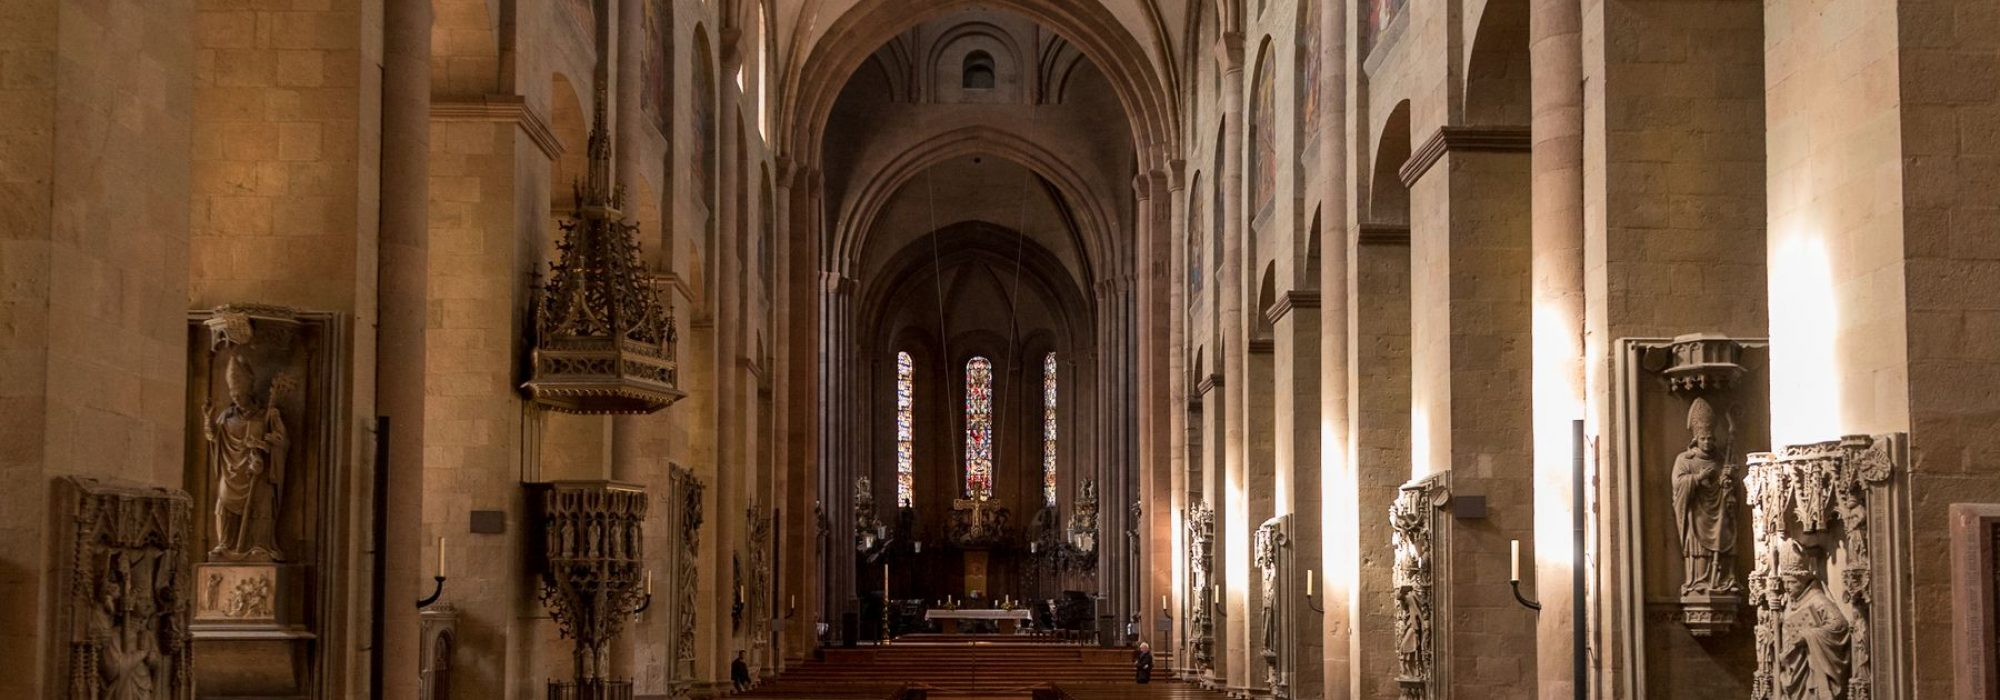 Midday sunlight illuminates the maine nave of Saint Martin's Cathedral in Mainz, or the Mainzer Dom. One of Mainz's most well-known buildings, it has stood over 1,000 years.